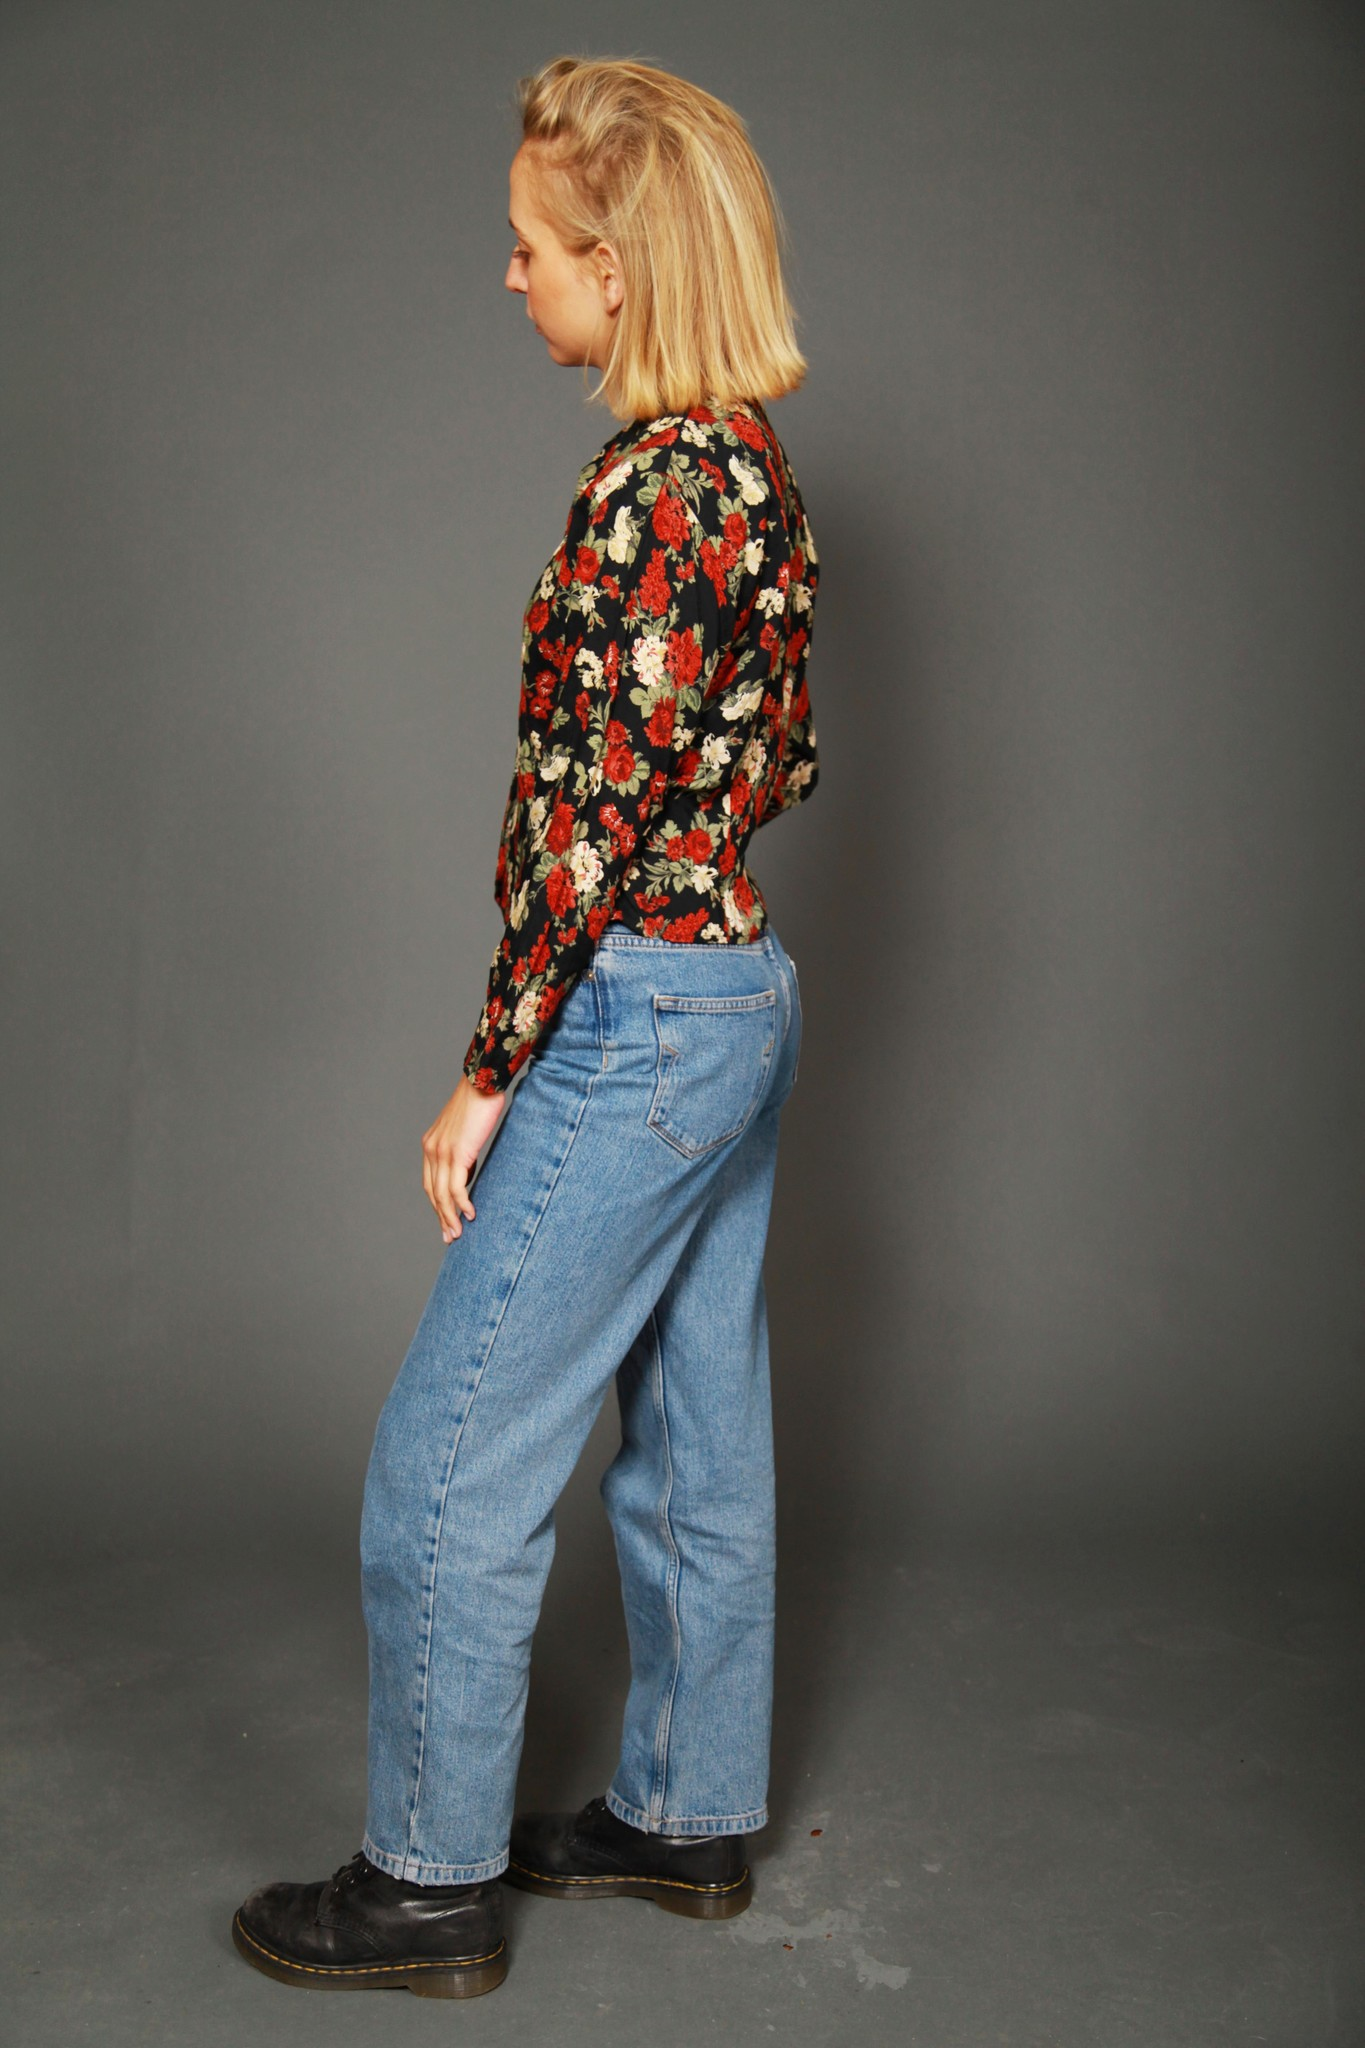 Floral 80s shirt with button front